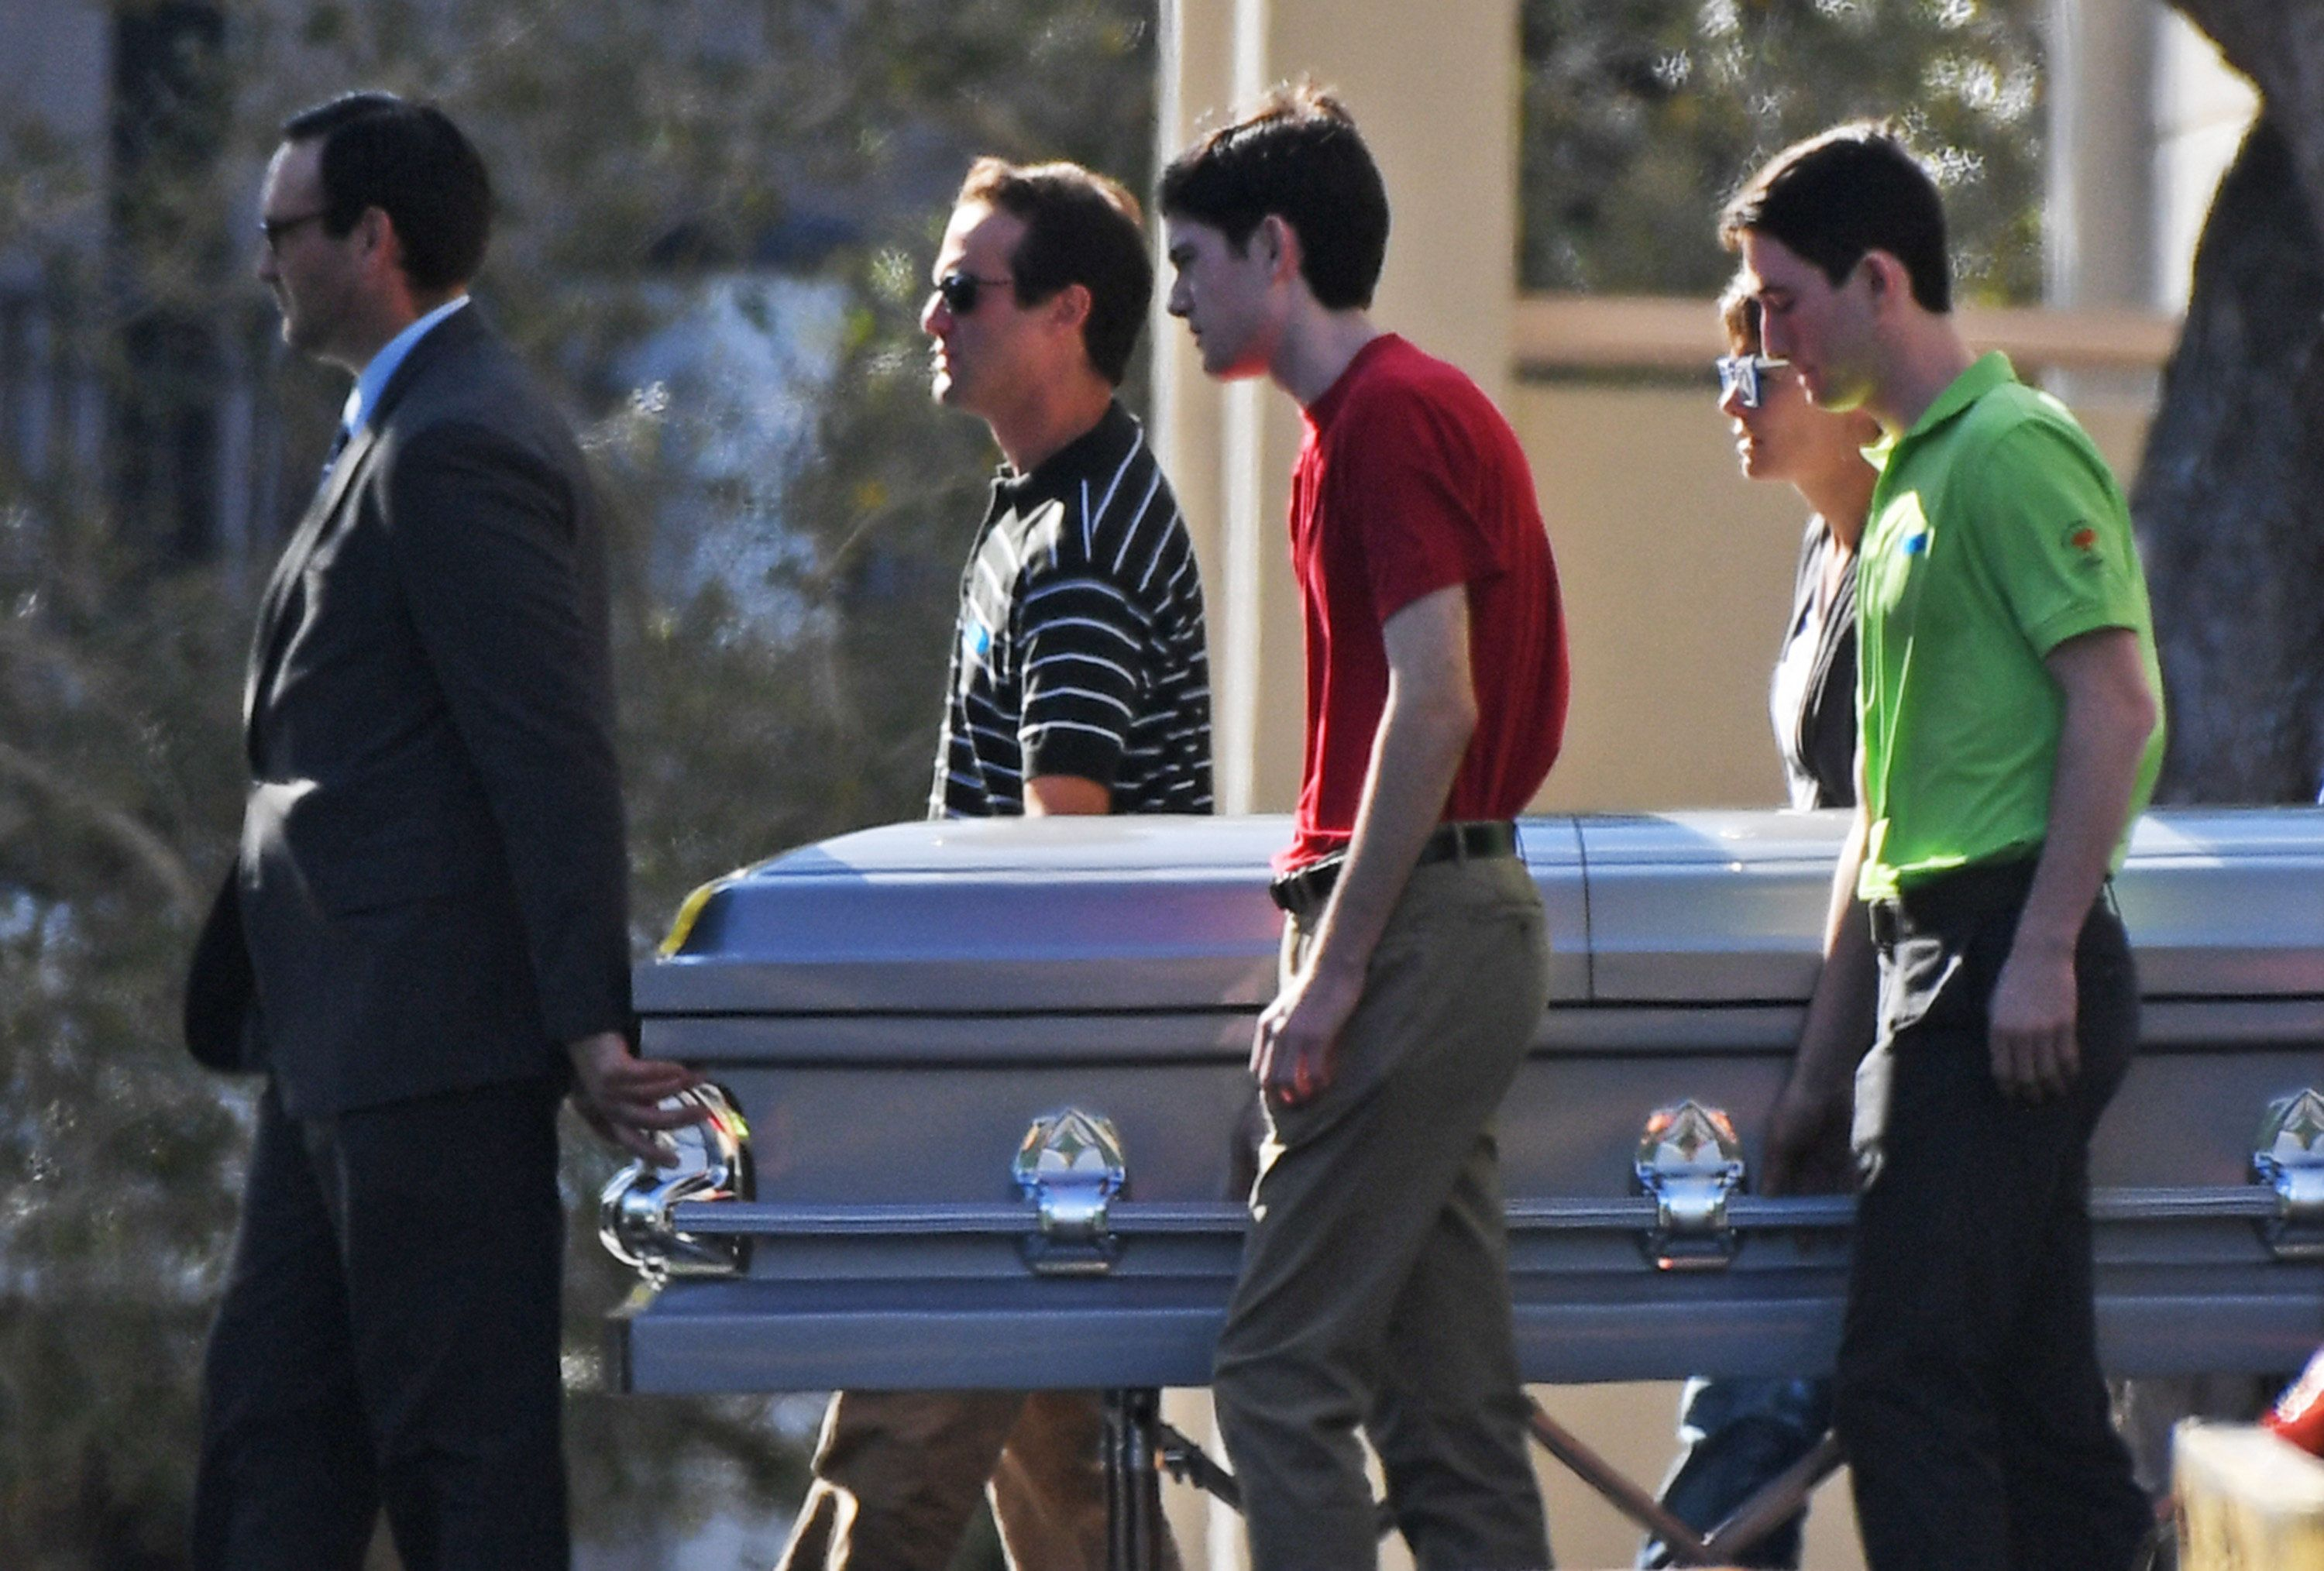 Pallbearers walk the casket of Scott Beigel, a teacher at Marjory Stoneman Douglas High School, following a service at Temple Beth El in Boca Raton, Fla., on Sunday.